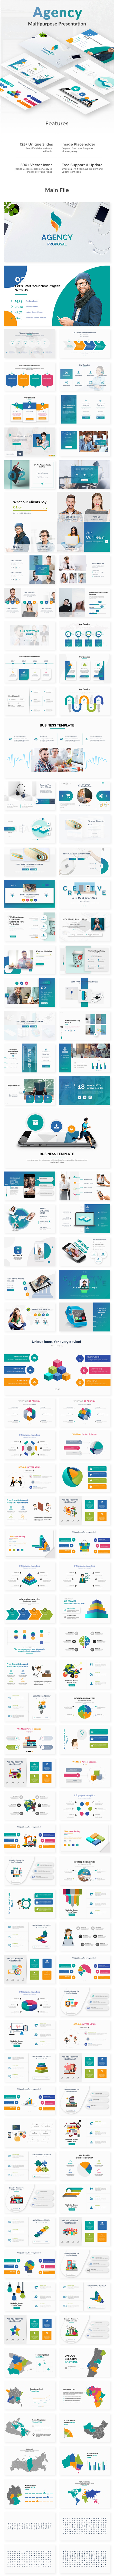 Agency Proposal Multipurpose Google Slide Template - Google Slides Presentation Templates